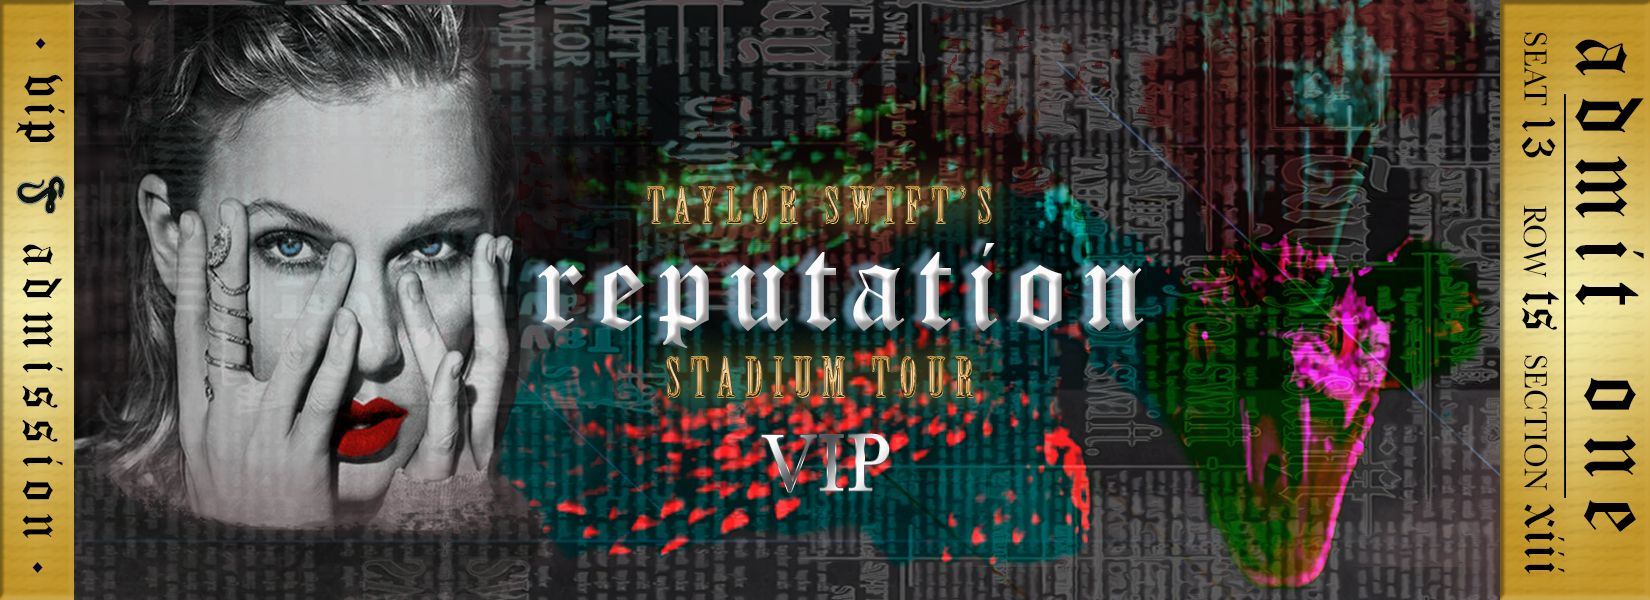 My Version Of The Taylor Swift Reputation Statium Tour Vip Ticket